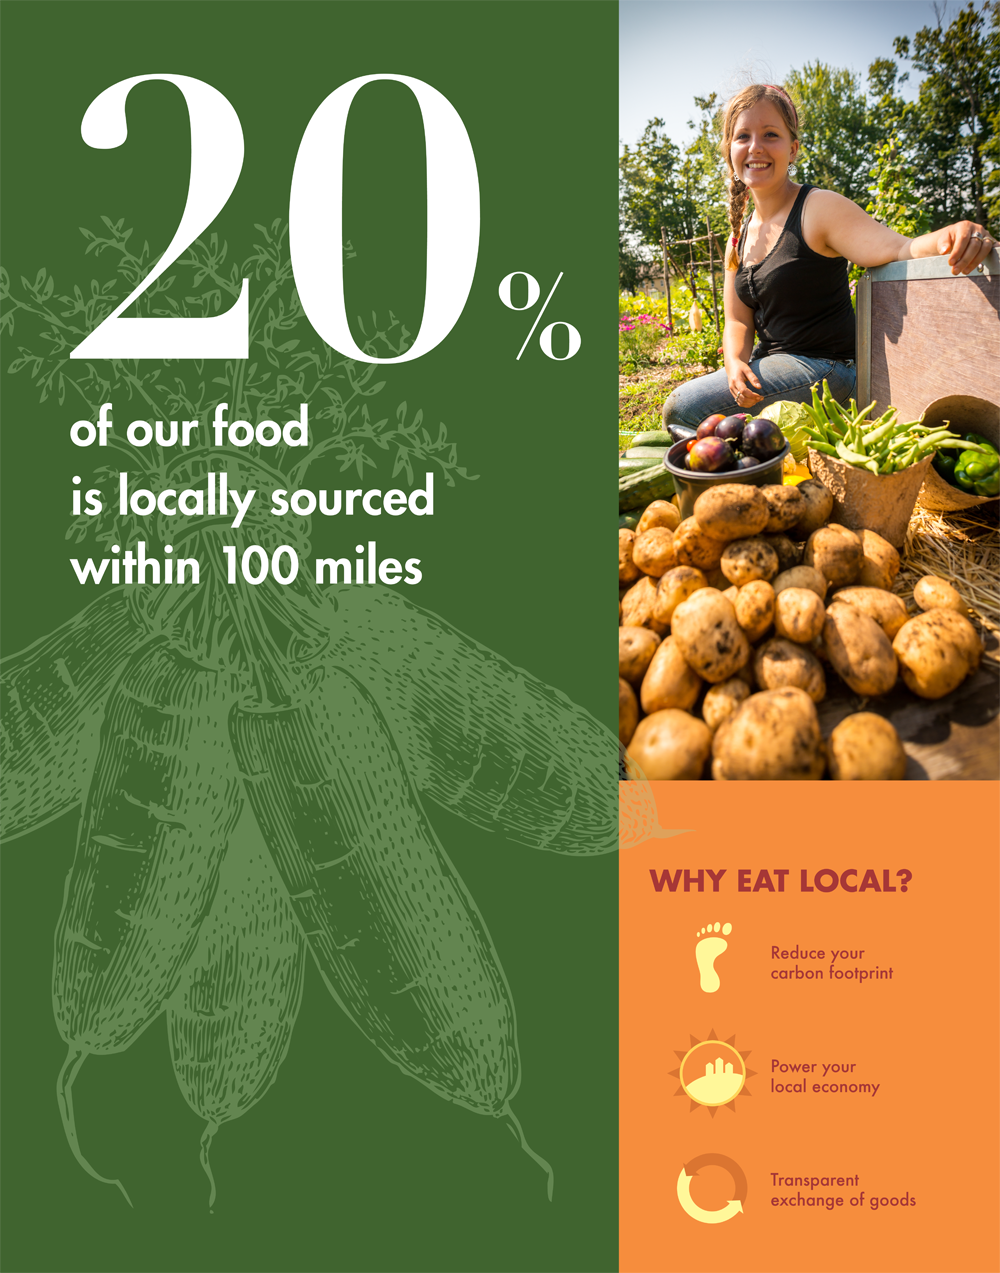 alicia-bergeron_colby-sawyer-local-foods-poster-1.png